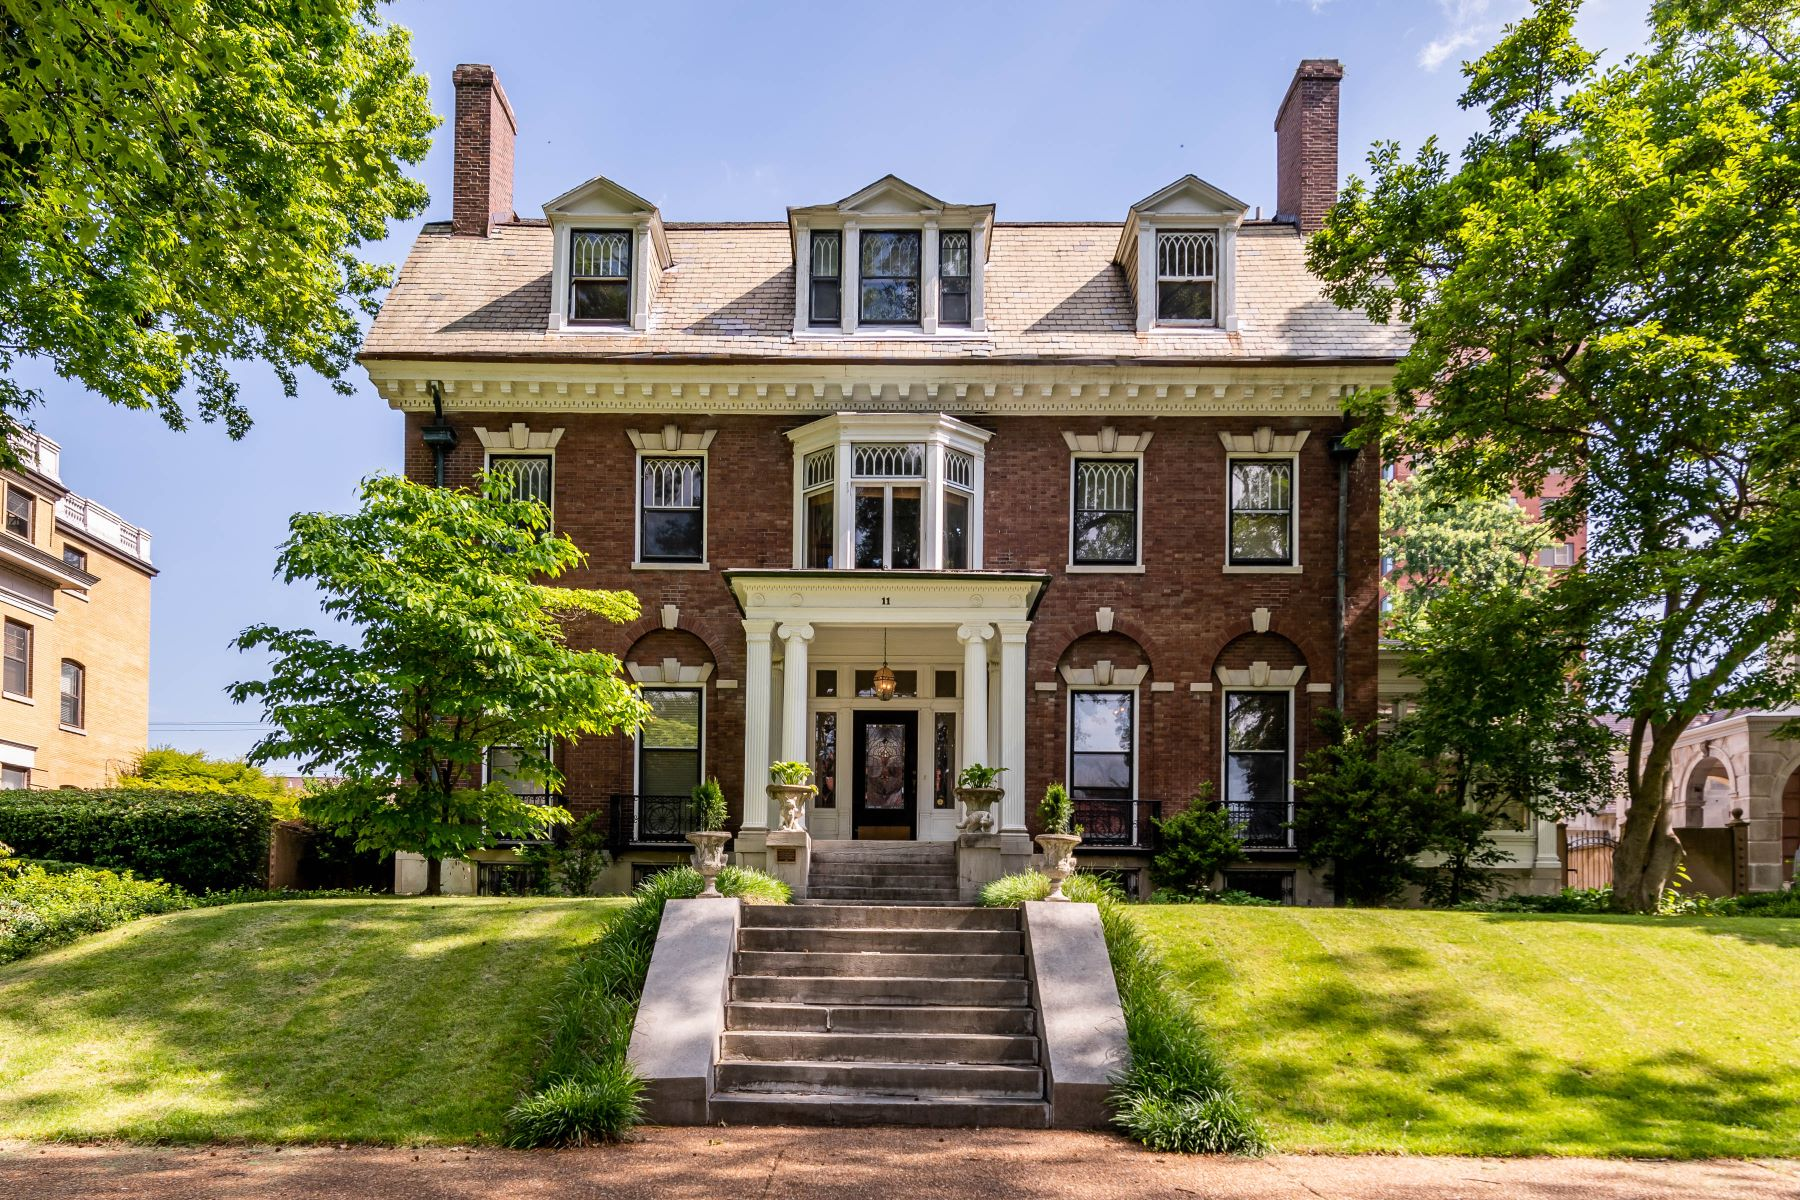 Single Family Homes for Sale at Historic Manse in the popular Washington Terrace neighborhood of the CWE 11 Washington Terrace St. Louis, Missouri 63112 United States